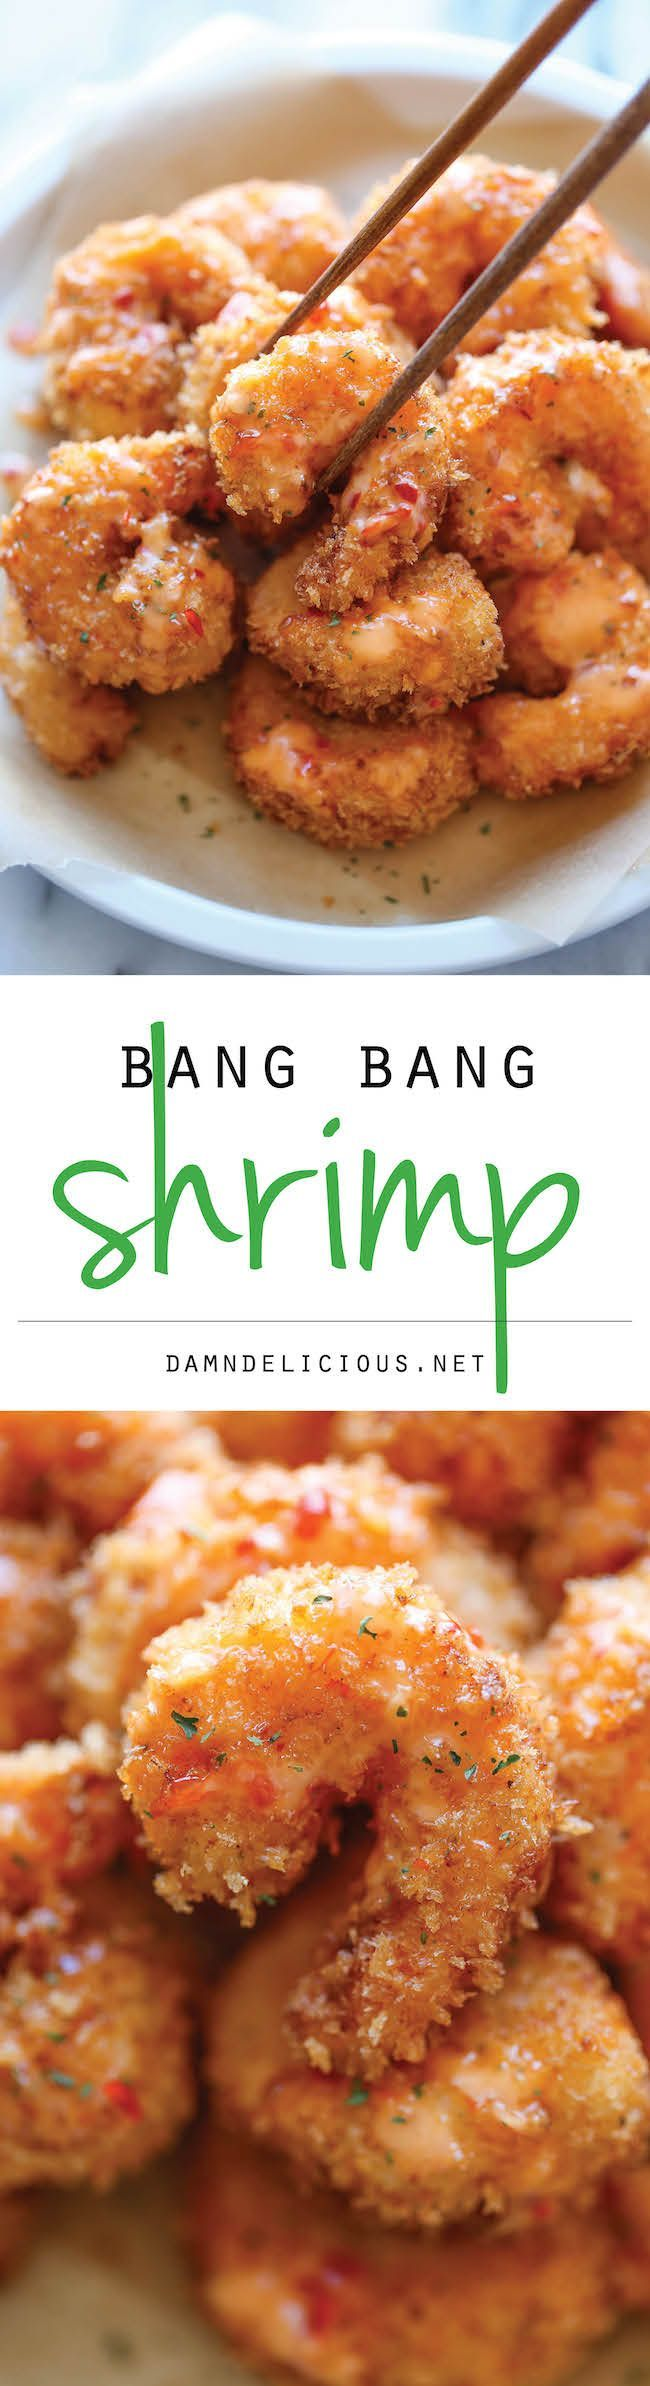 Bang Bang Shrimp - This tastes just like Cheesecake Factory's version, except it's way cheaper and so much tastier! {pinterest: @xpiink ♚}